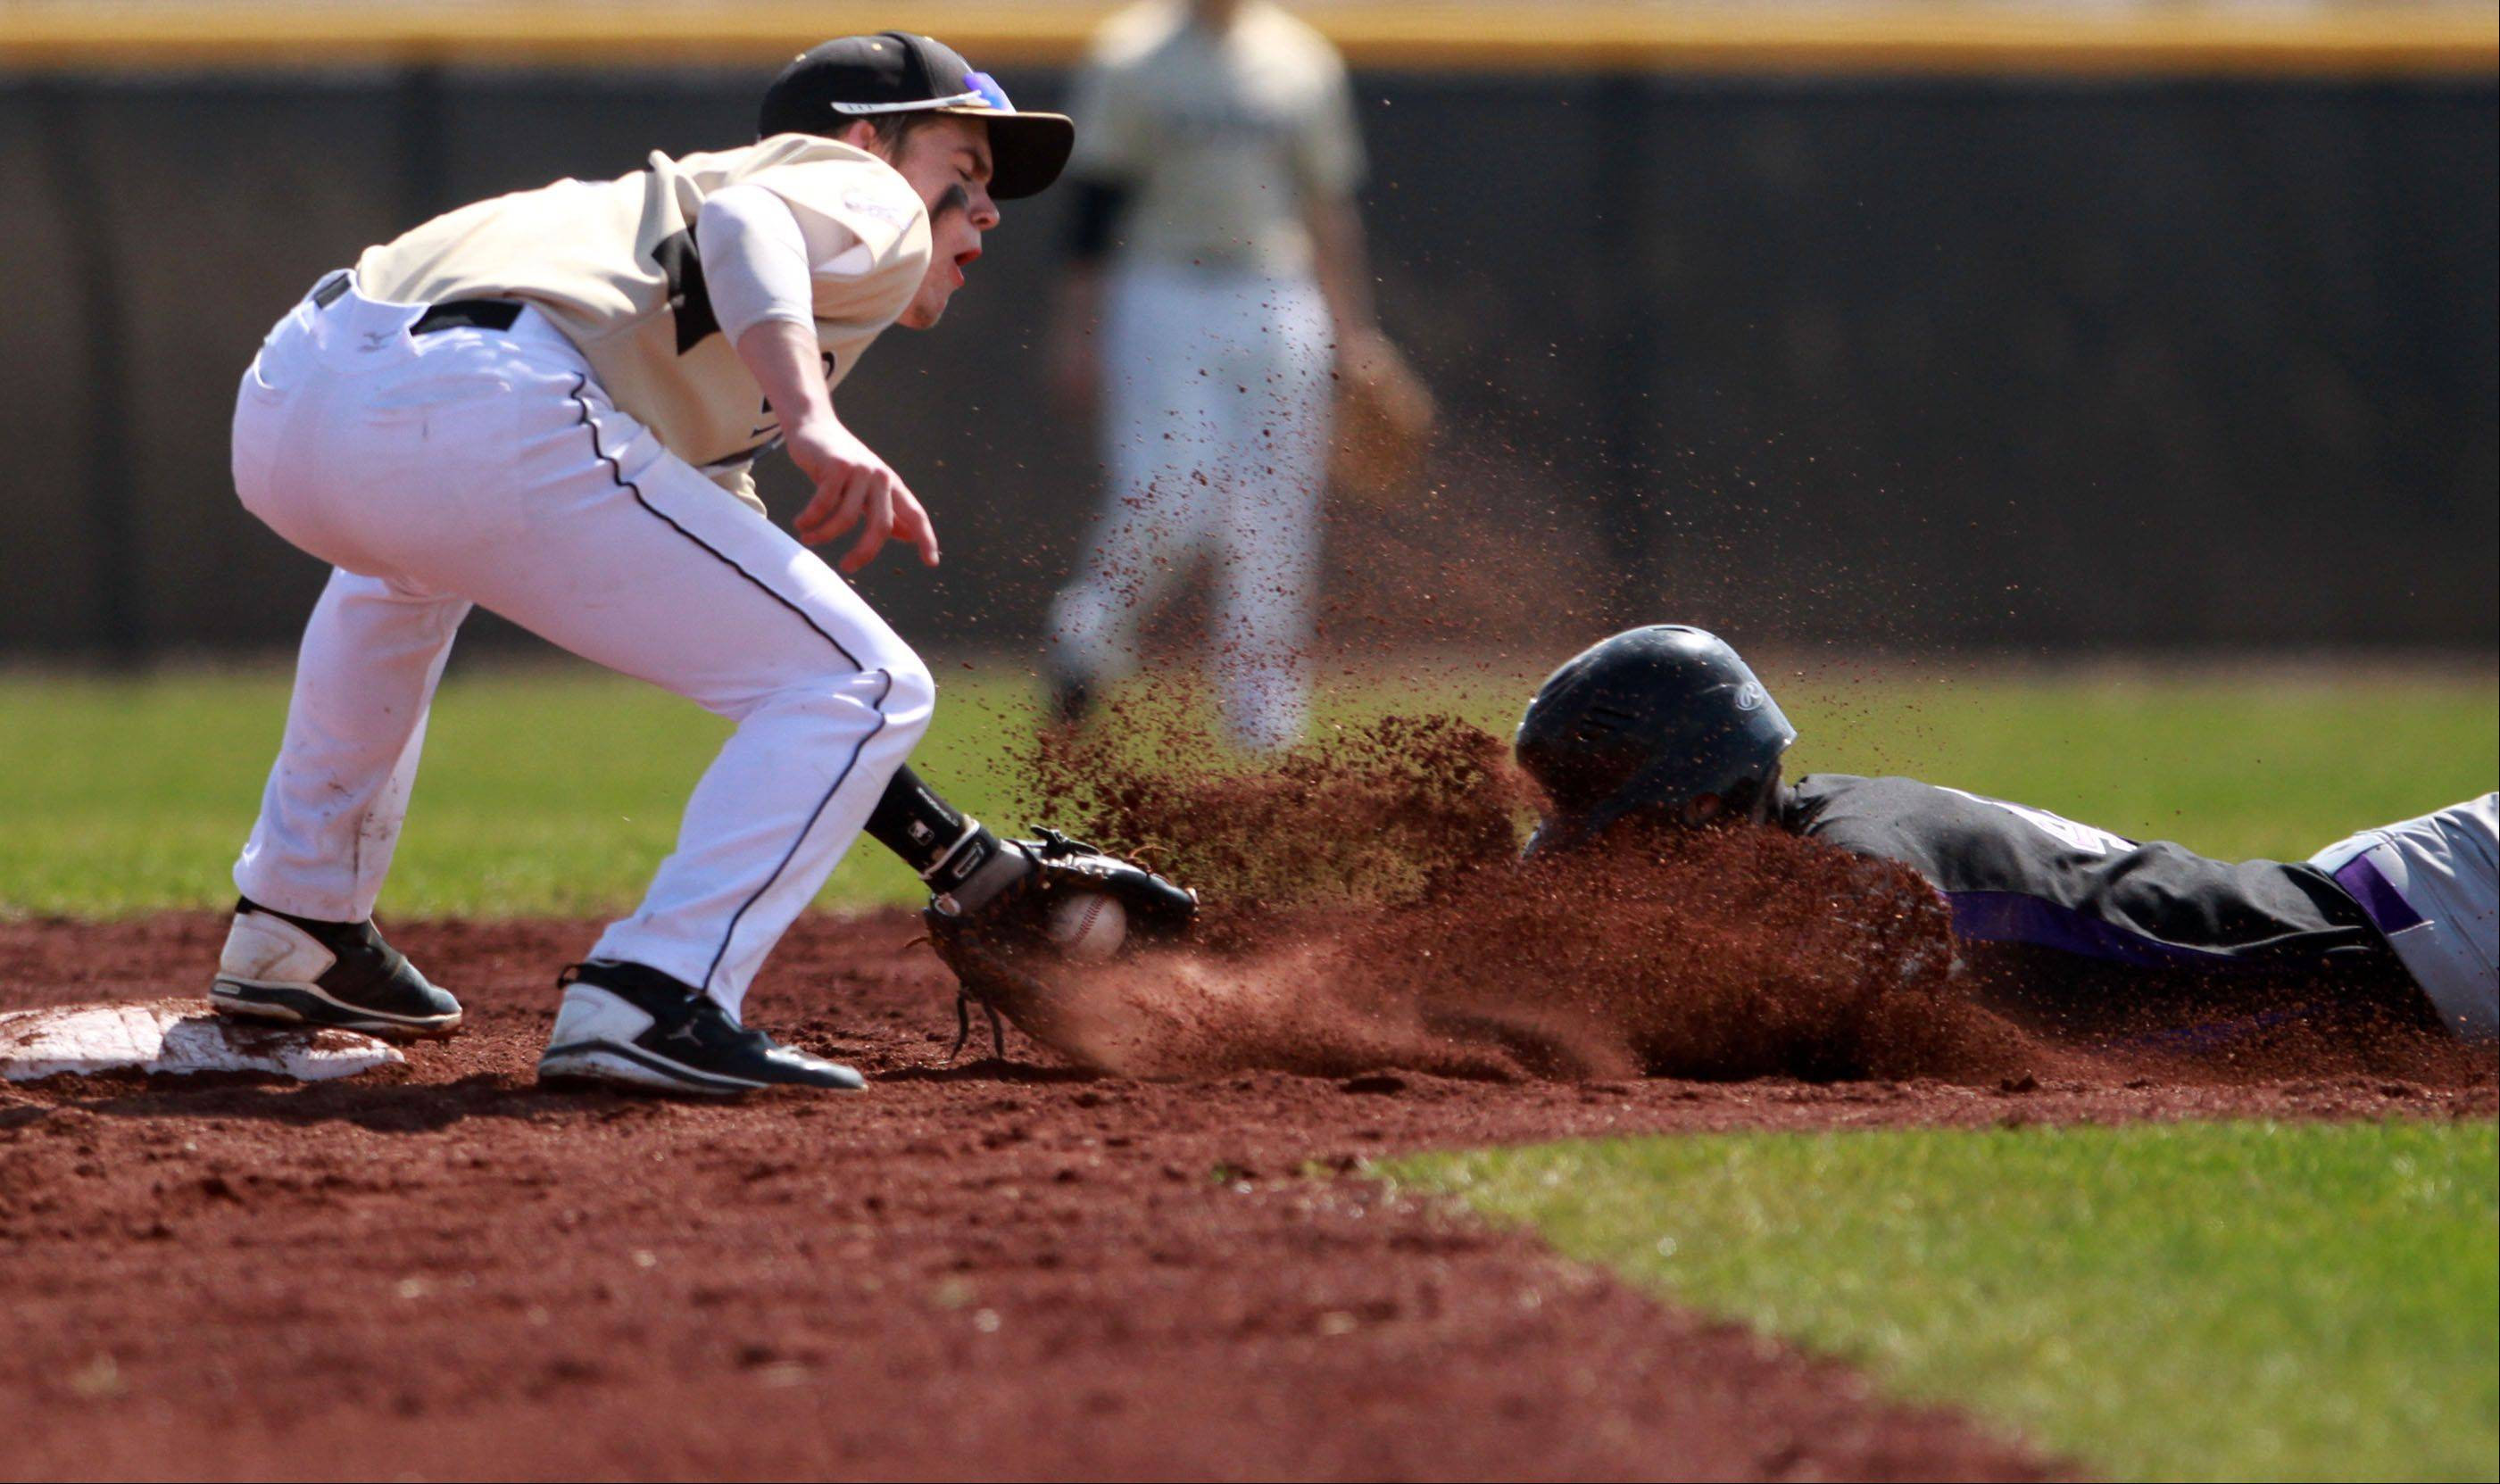 Hampshire's Tyler Crater is safe at second base as Grayslake North's Nick Carmody applies the tag at Grayslake North on Saturday.